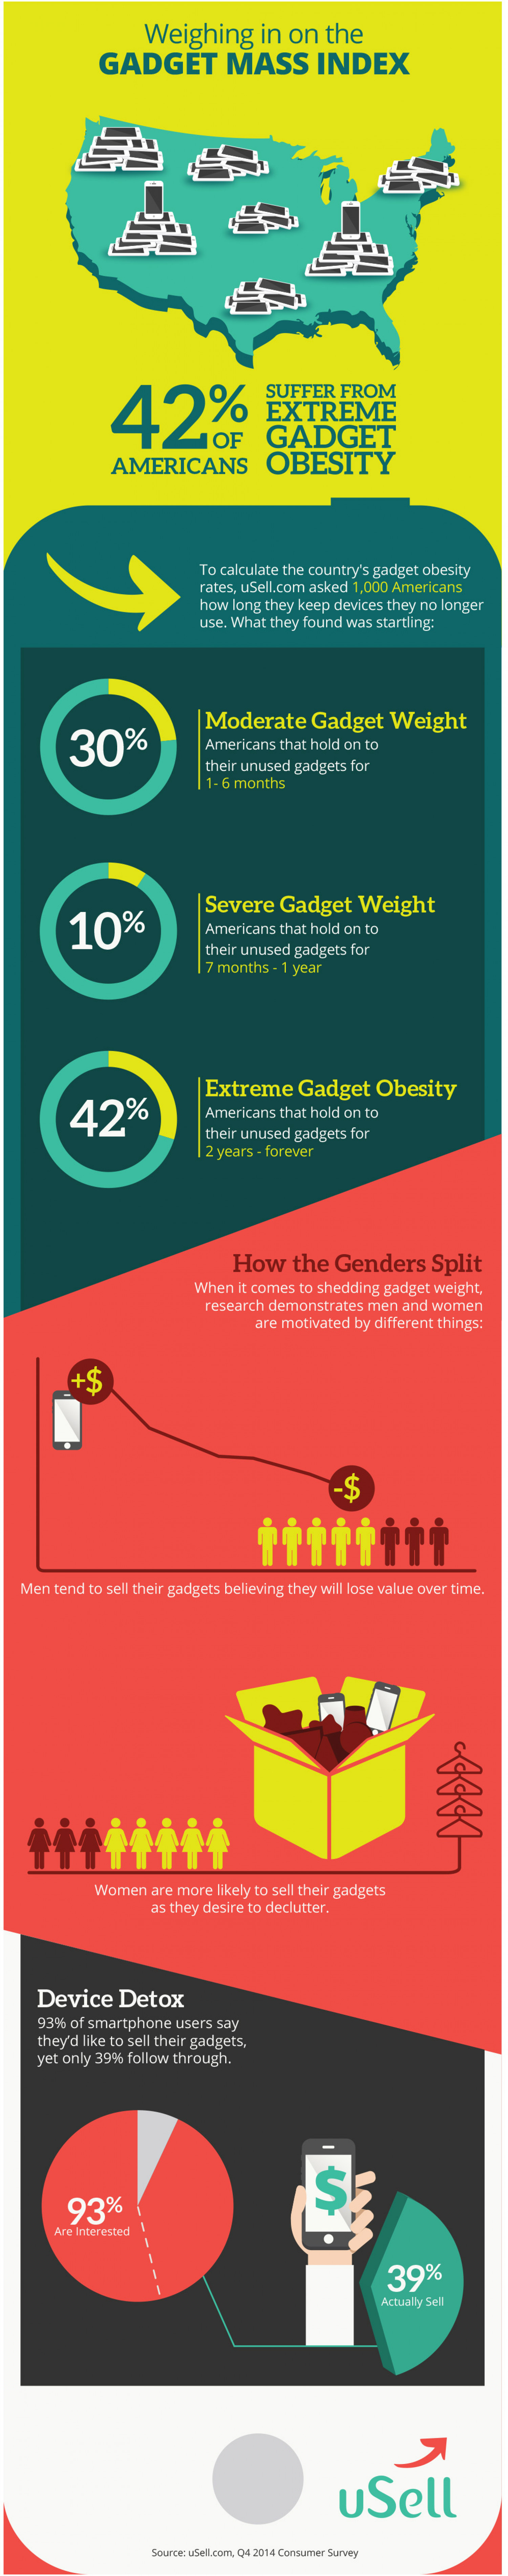 Weighing in on the Gadget Mass Index Infographic